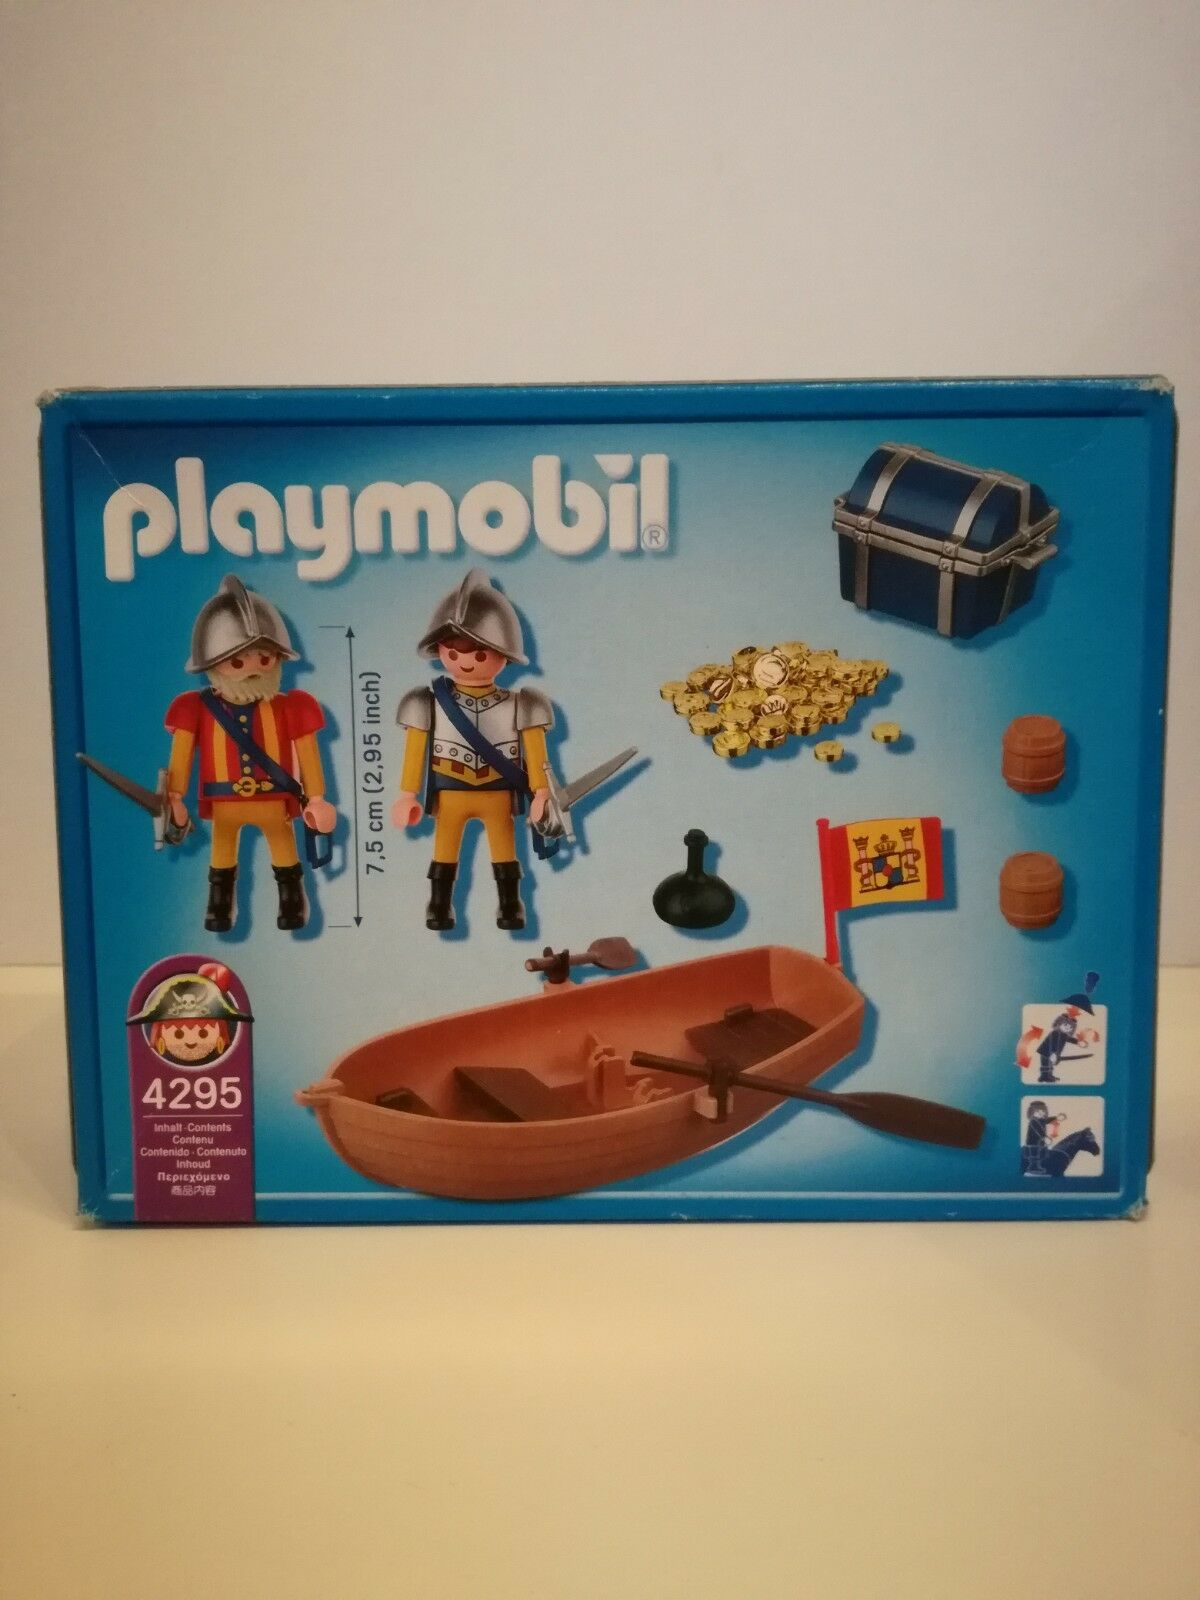 Playmobil 4295 4295 4295 NEW - Treasure chest transport in row boat (MISB, NRFB, OVP) 6799c5